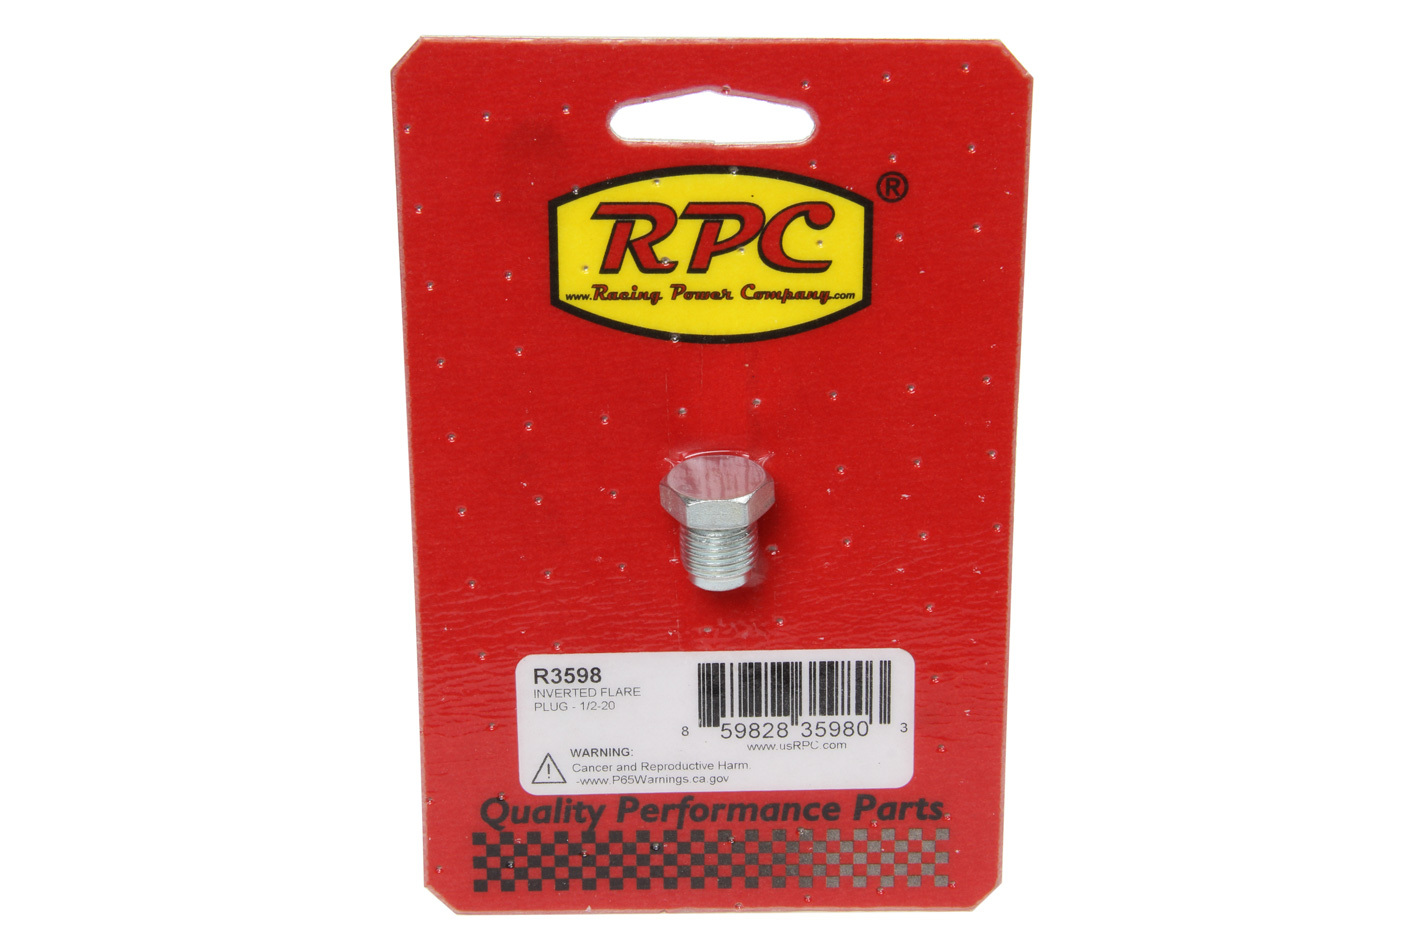 Racing Power Company R3598 Fitting, Plug, 1/2-20 in Inverted Flare Male, Hex Head, Steel, Zinc Oxide, Each